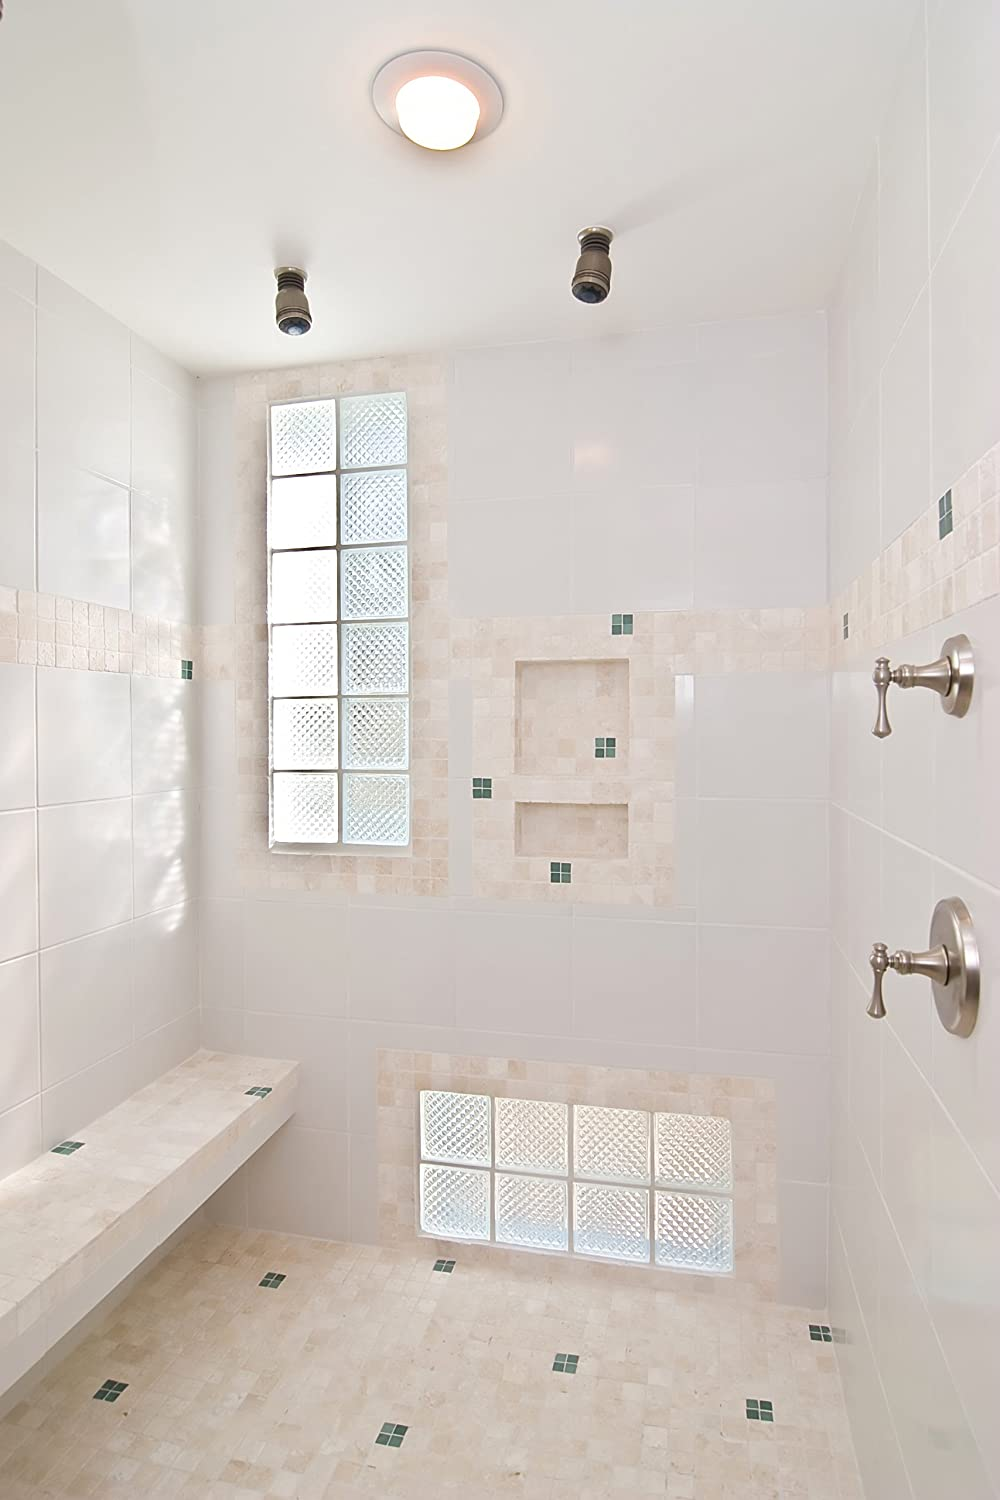 city of at a shower niches the look tile preformed niche indoor examples